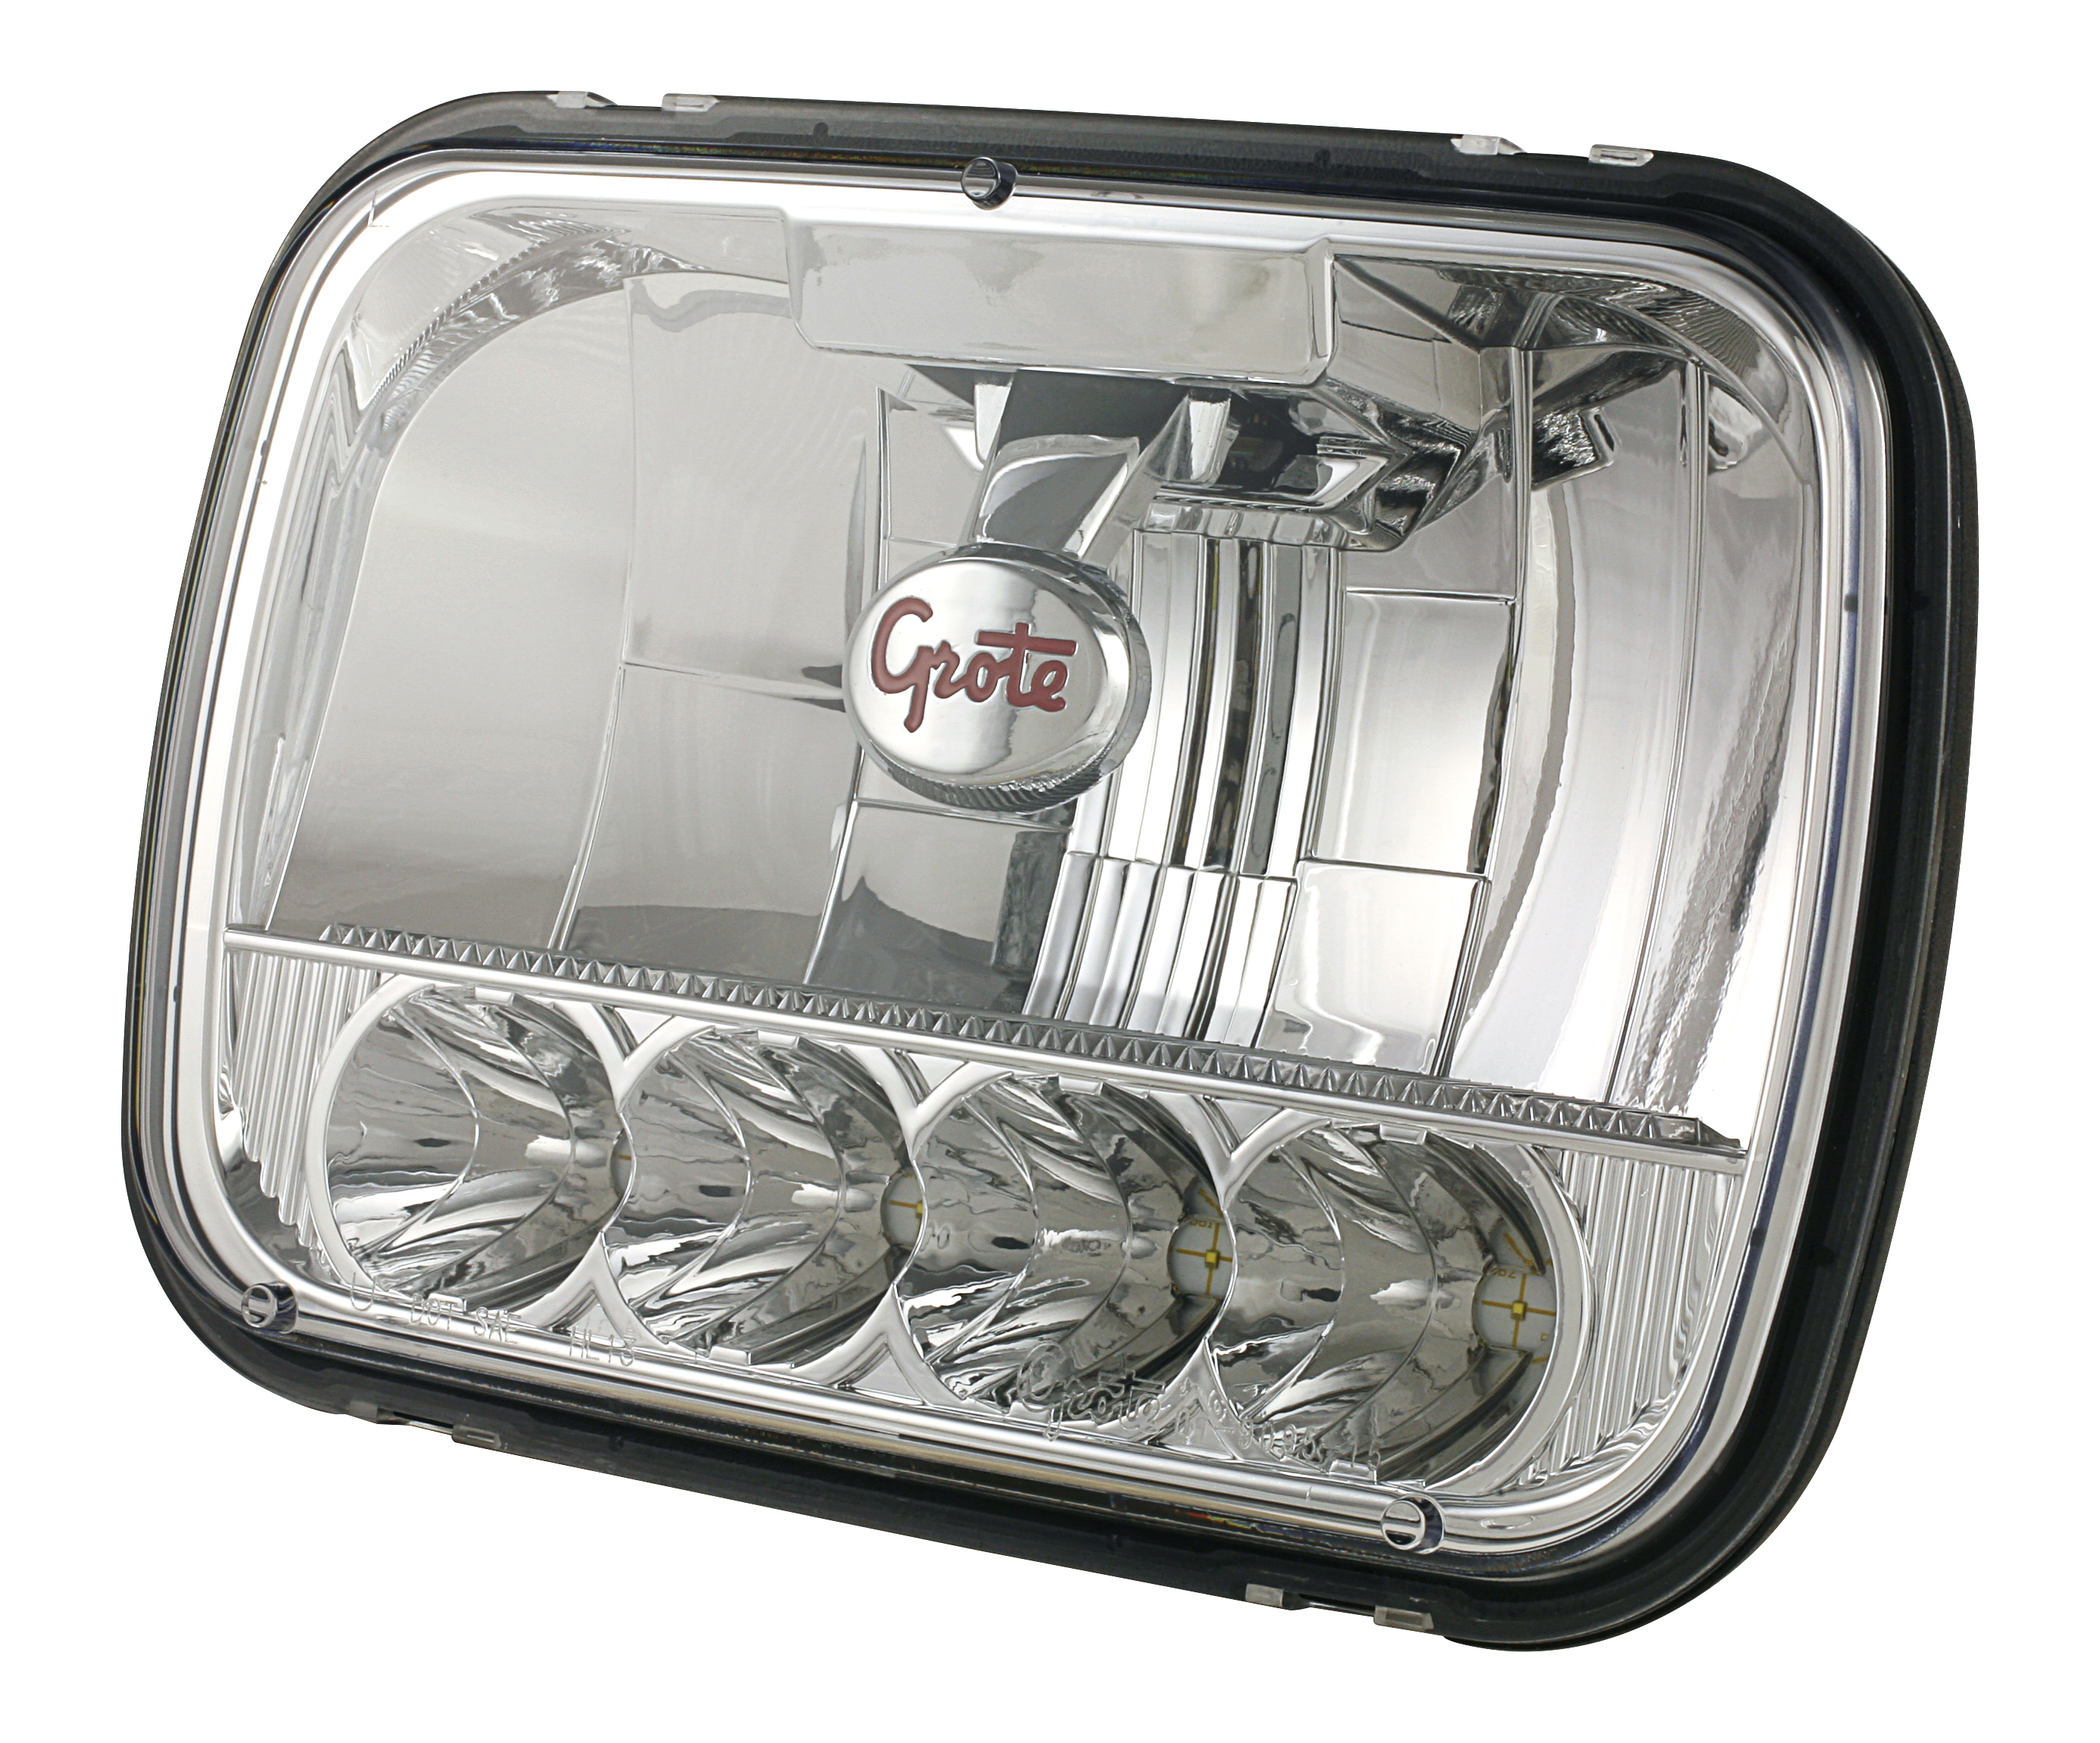 Grote Industries - 90951-5 – Grote 5×7 LED Sealed Beam Replacement Headlight